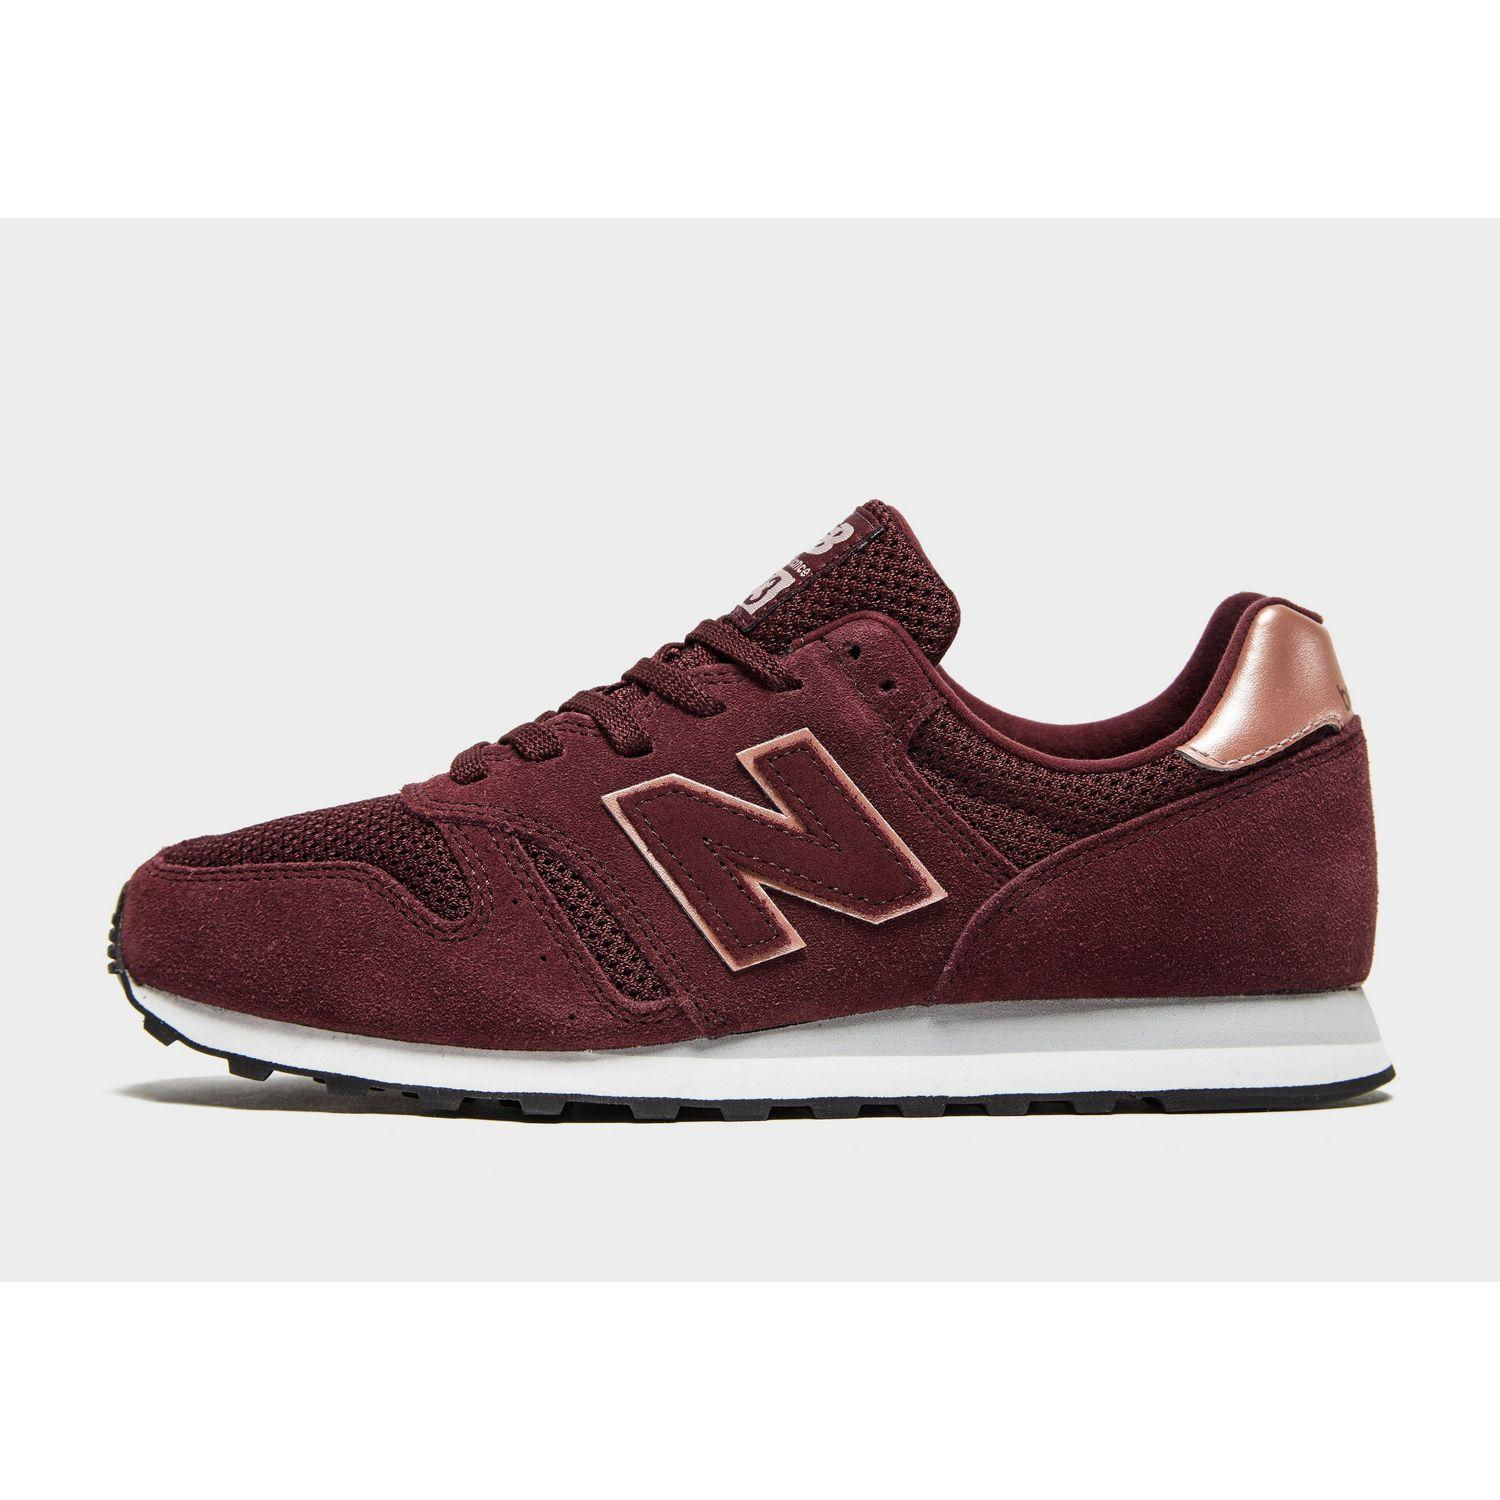 Marco Polo Inconveniencia Producción  New Balance Suede 373 in Burgundy/Rose Gold (Red) - Lyst